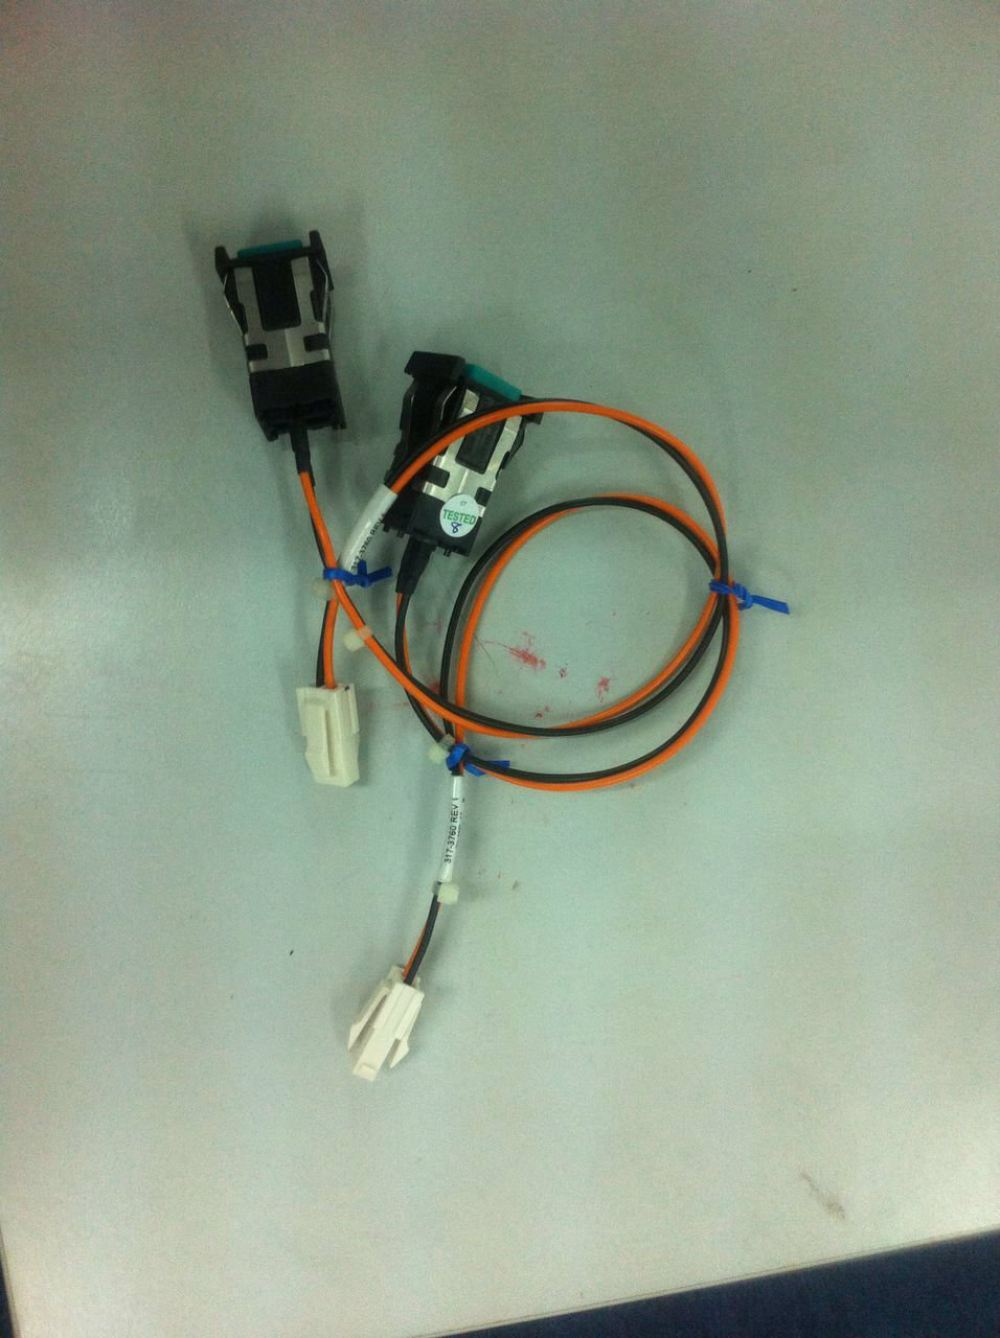 SECURITY PRODUCT WIRE HARNESS